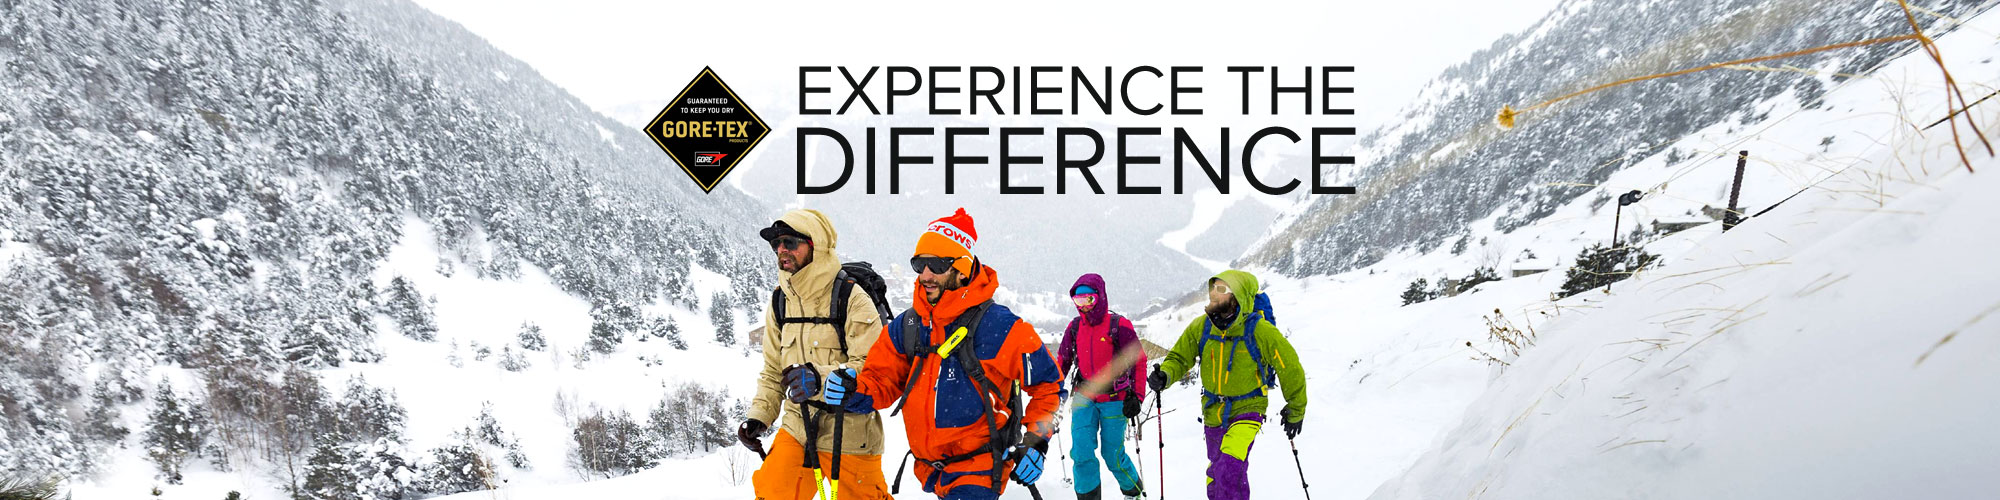 Experience the Difference with GORE-TEX Products